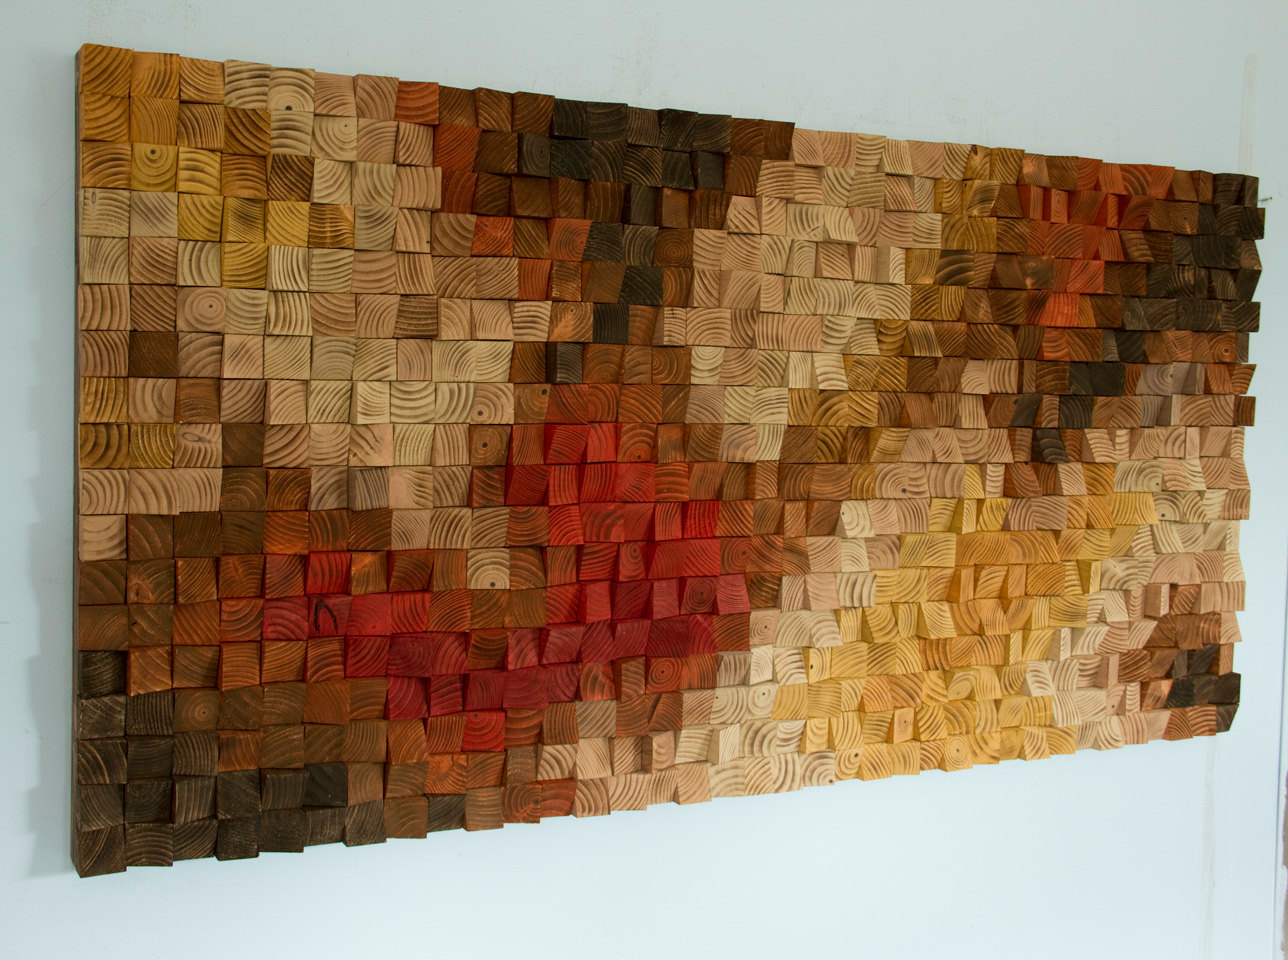 Art Painted On Wood Large Rustic Wood Wall Art Wood Wall Sculpture Abstract